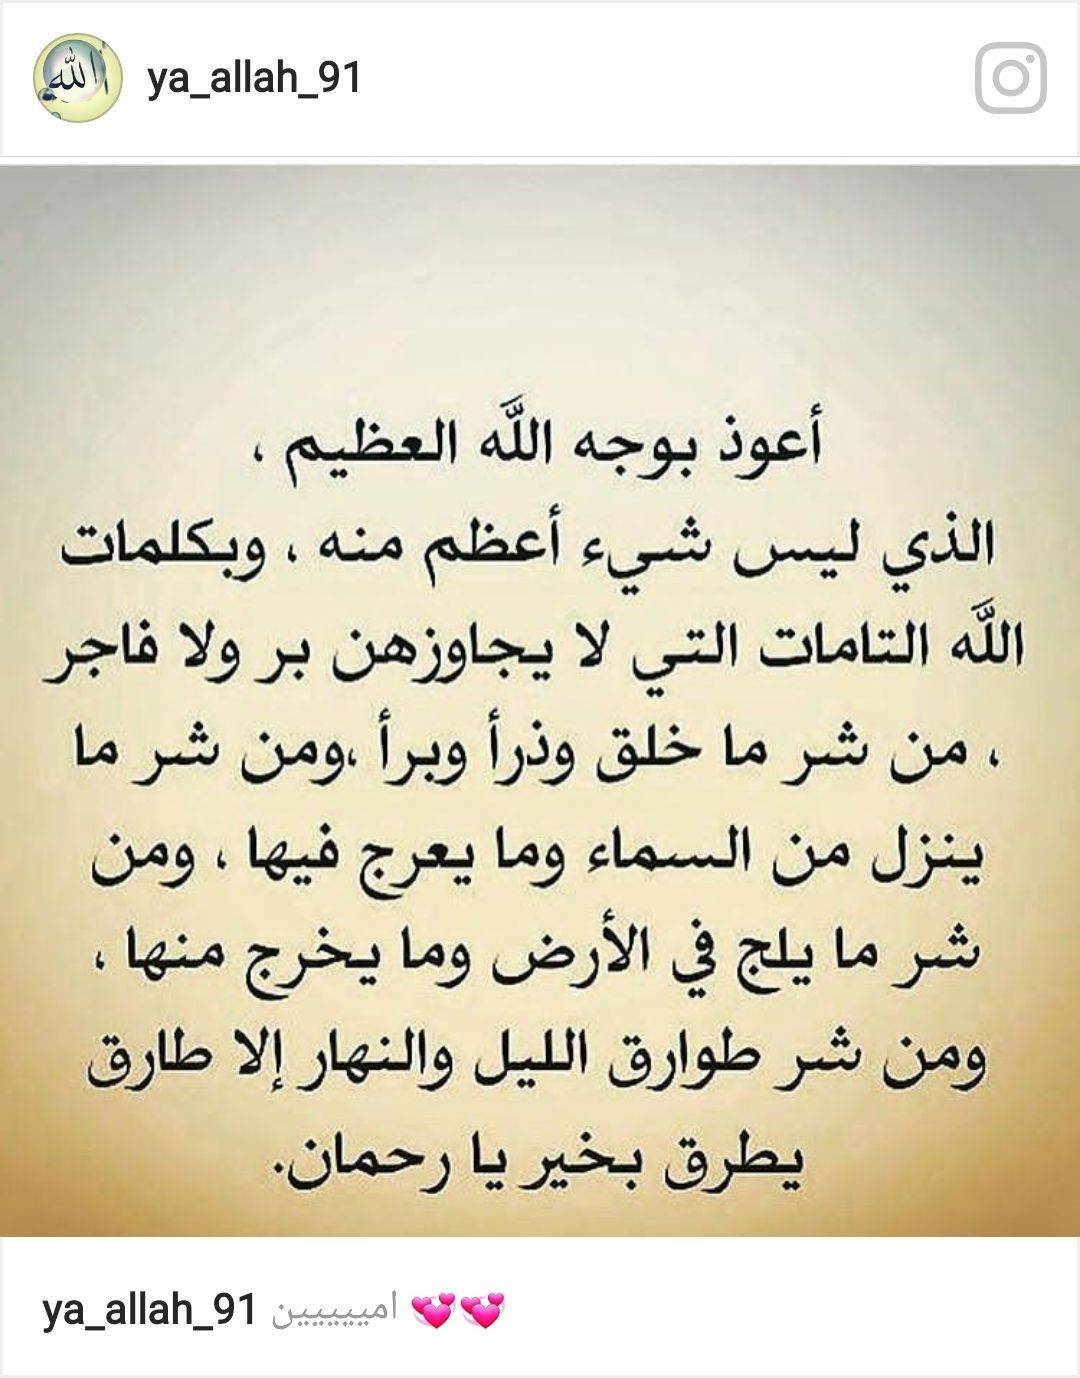 Pin By Lavender On دعاء إلى رب غفور Quotes Islamic Pictures Allah